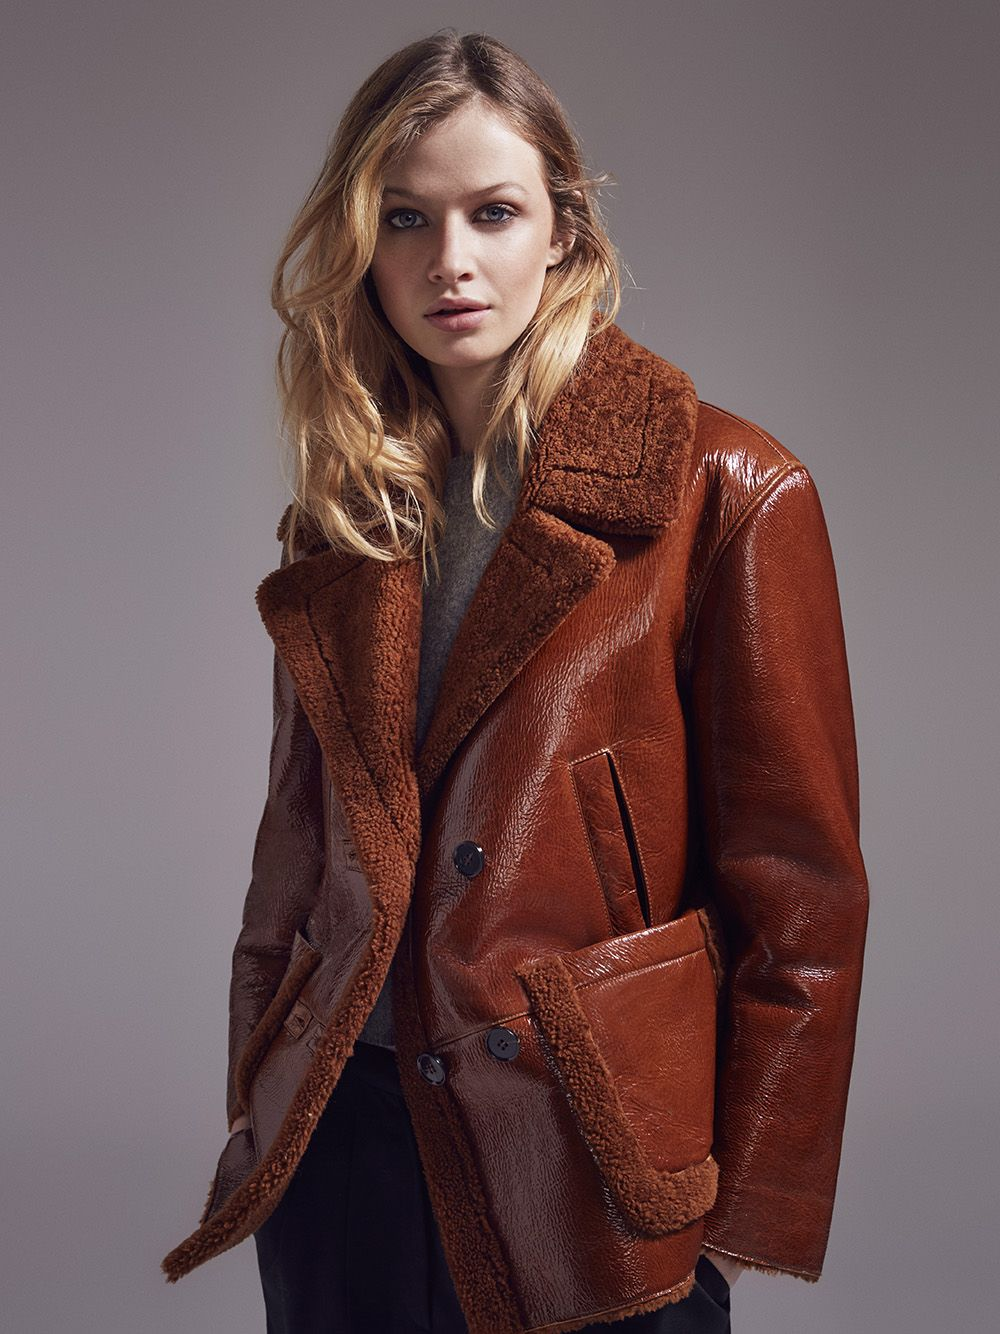 Look appearancesclothesstyle pinterest fur clothes and